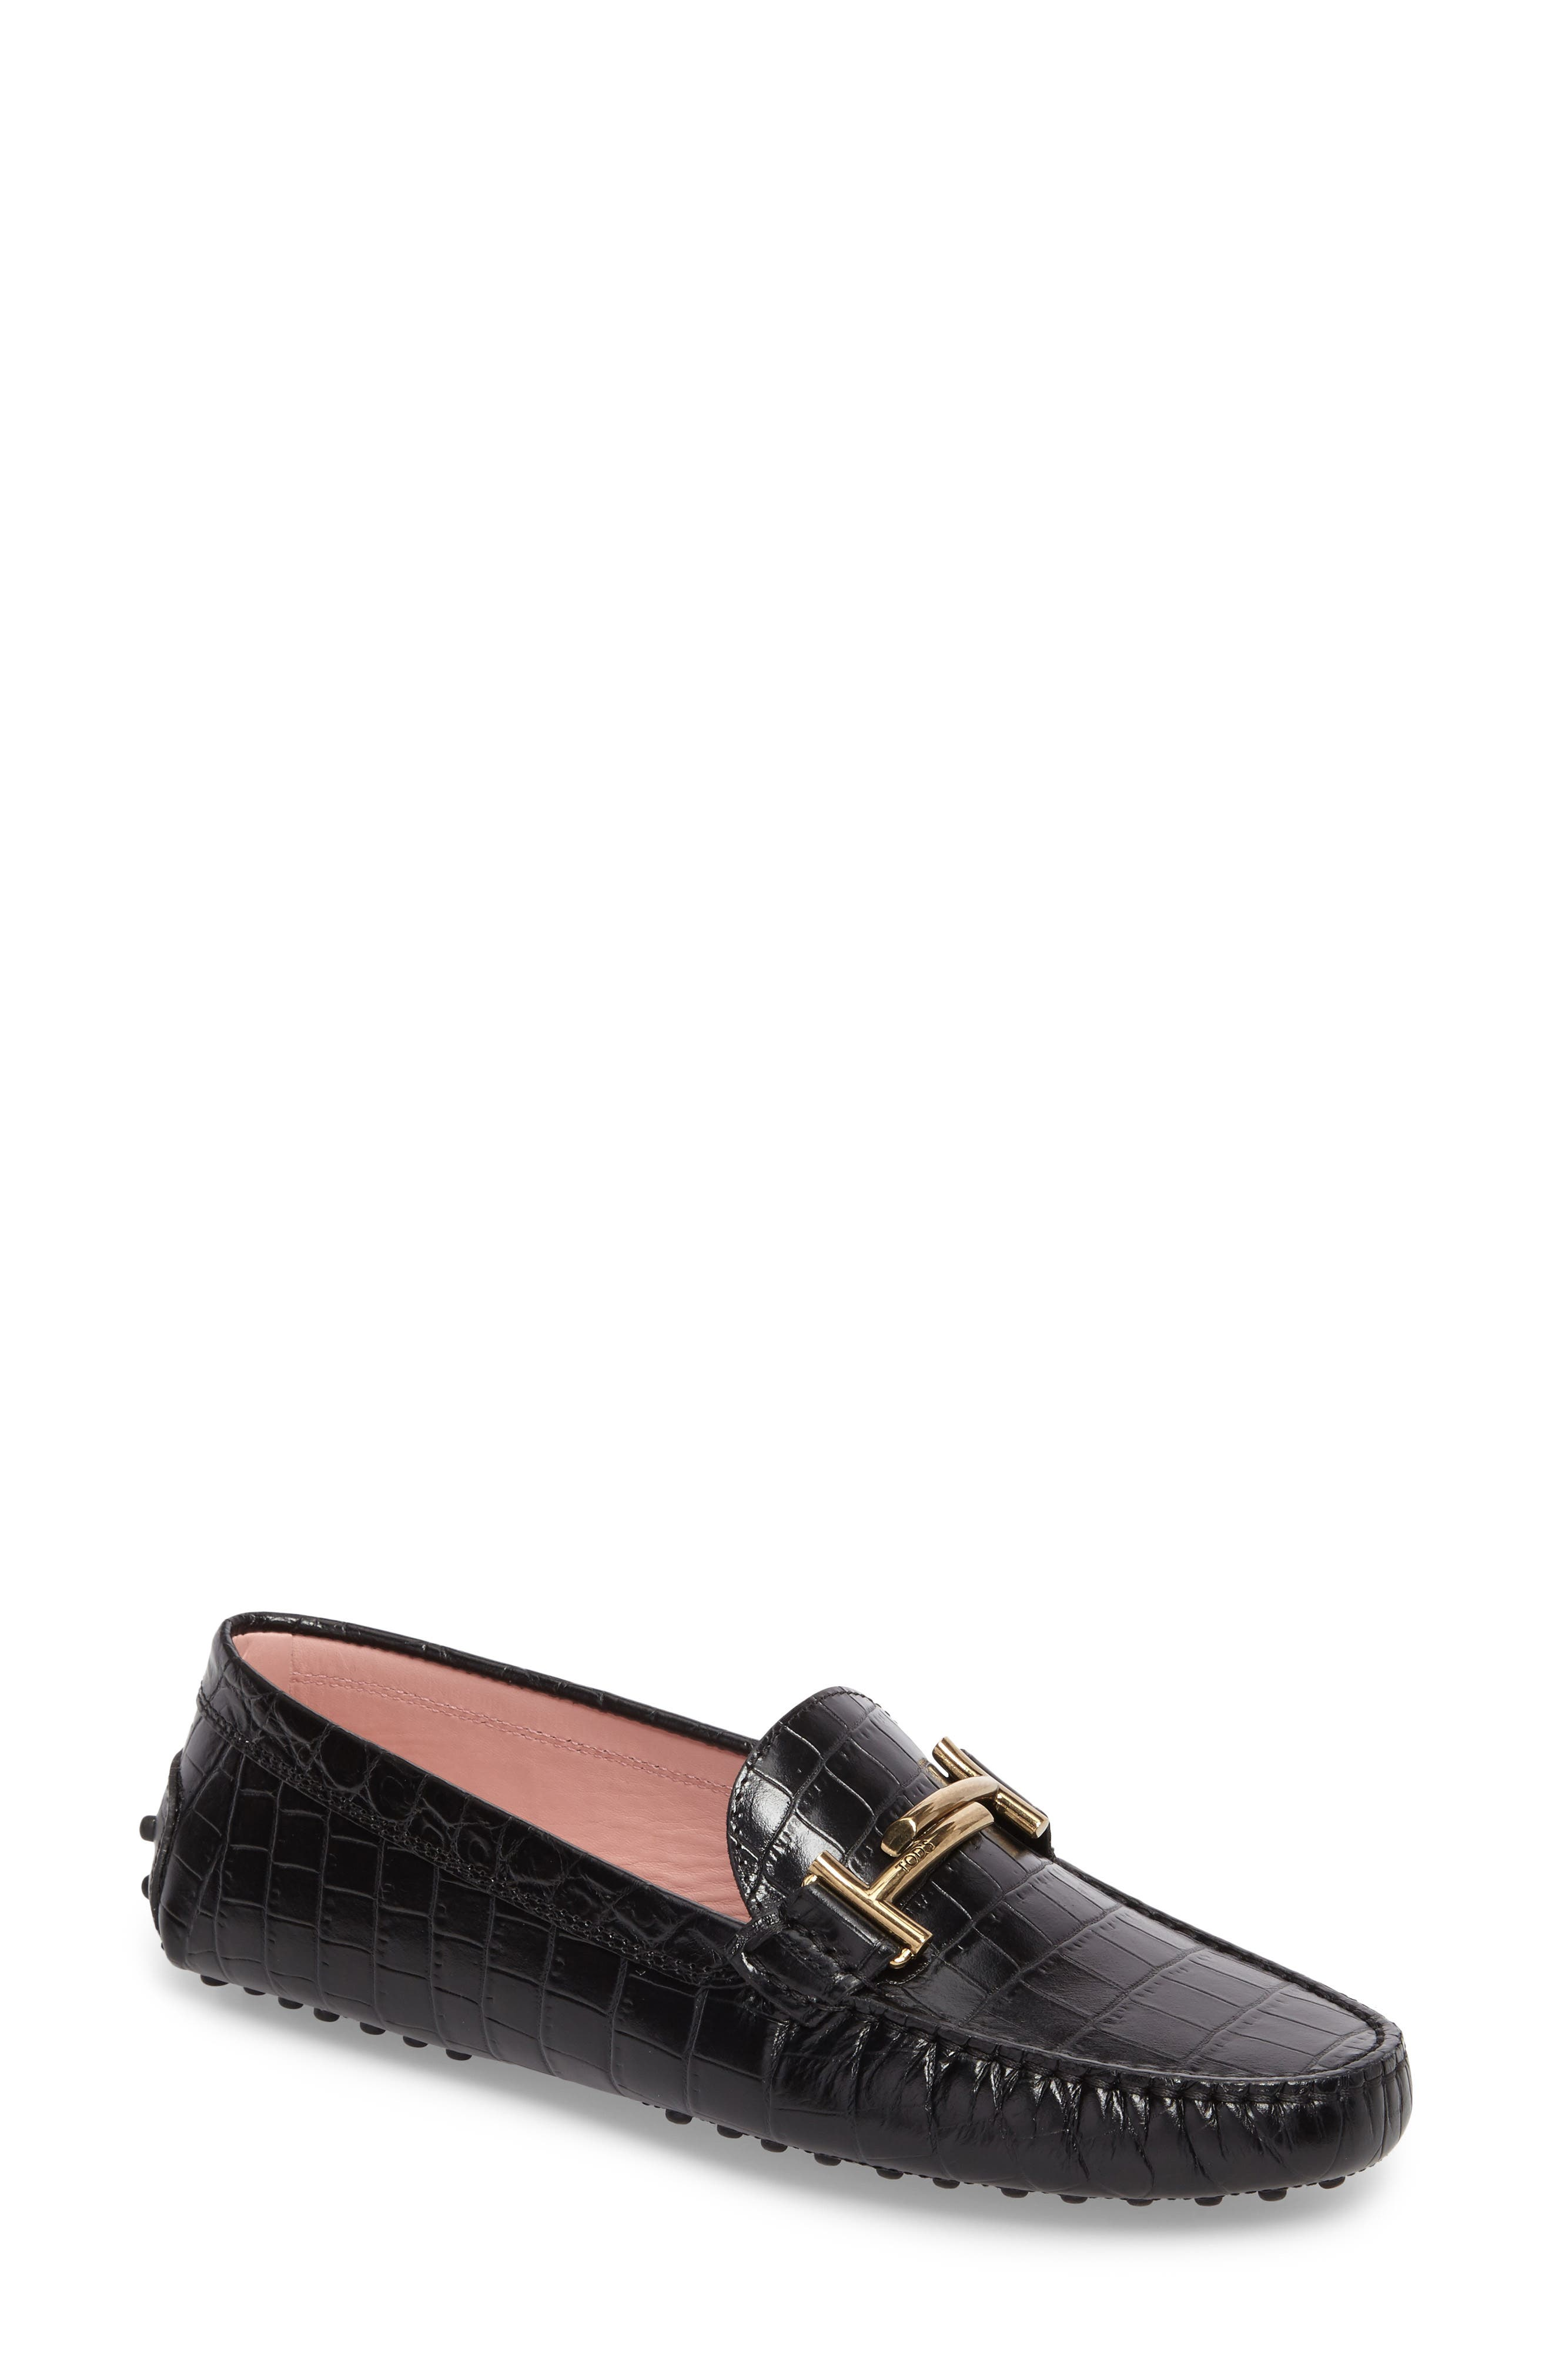 Main Image - Tod's 'Double T' Bit Loafer (Women)